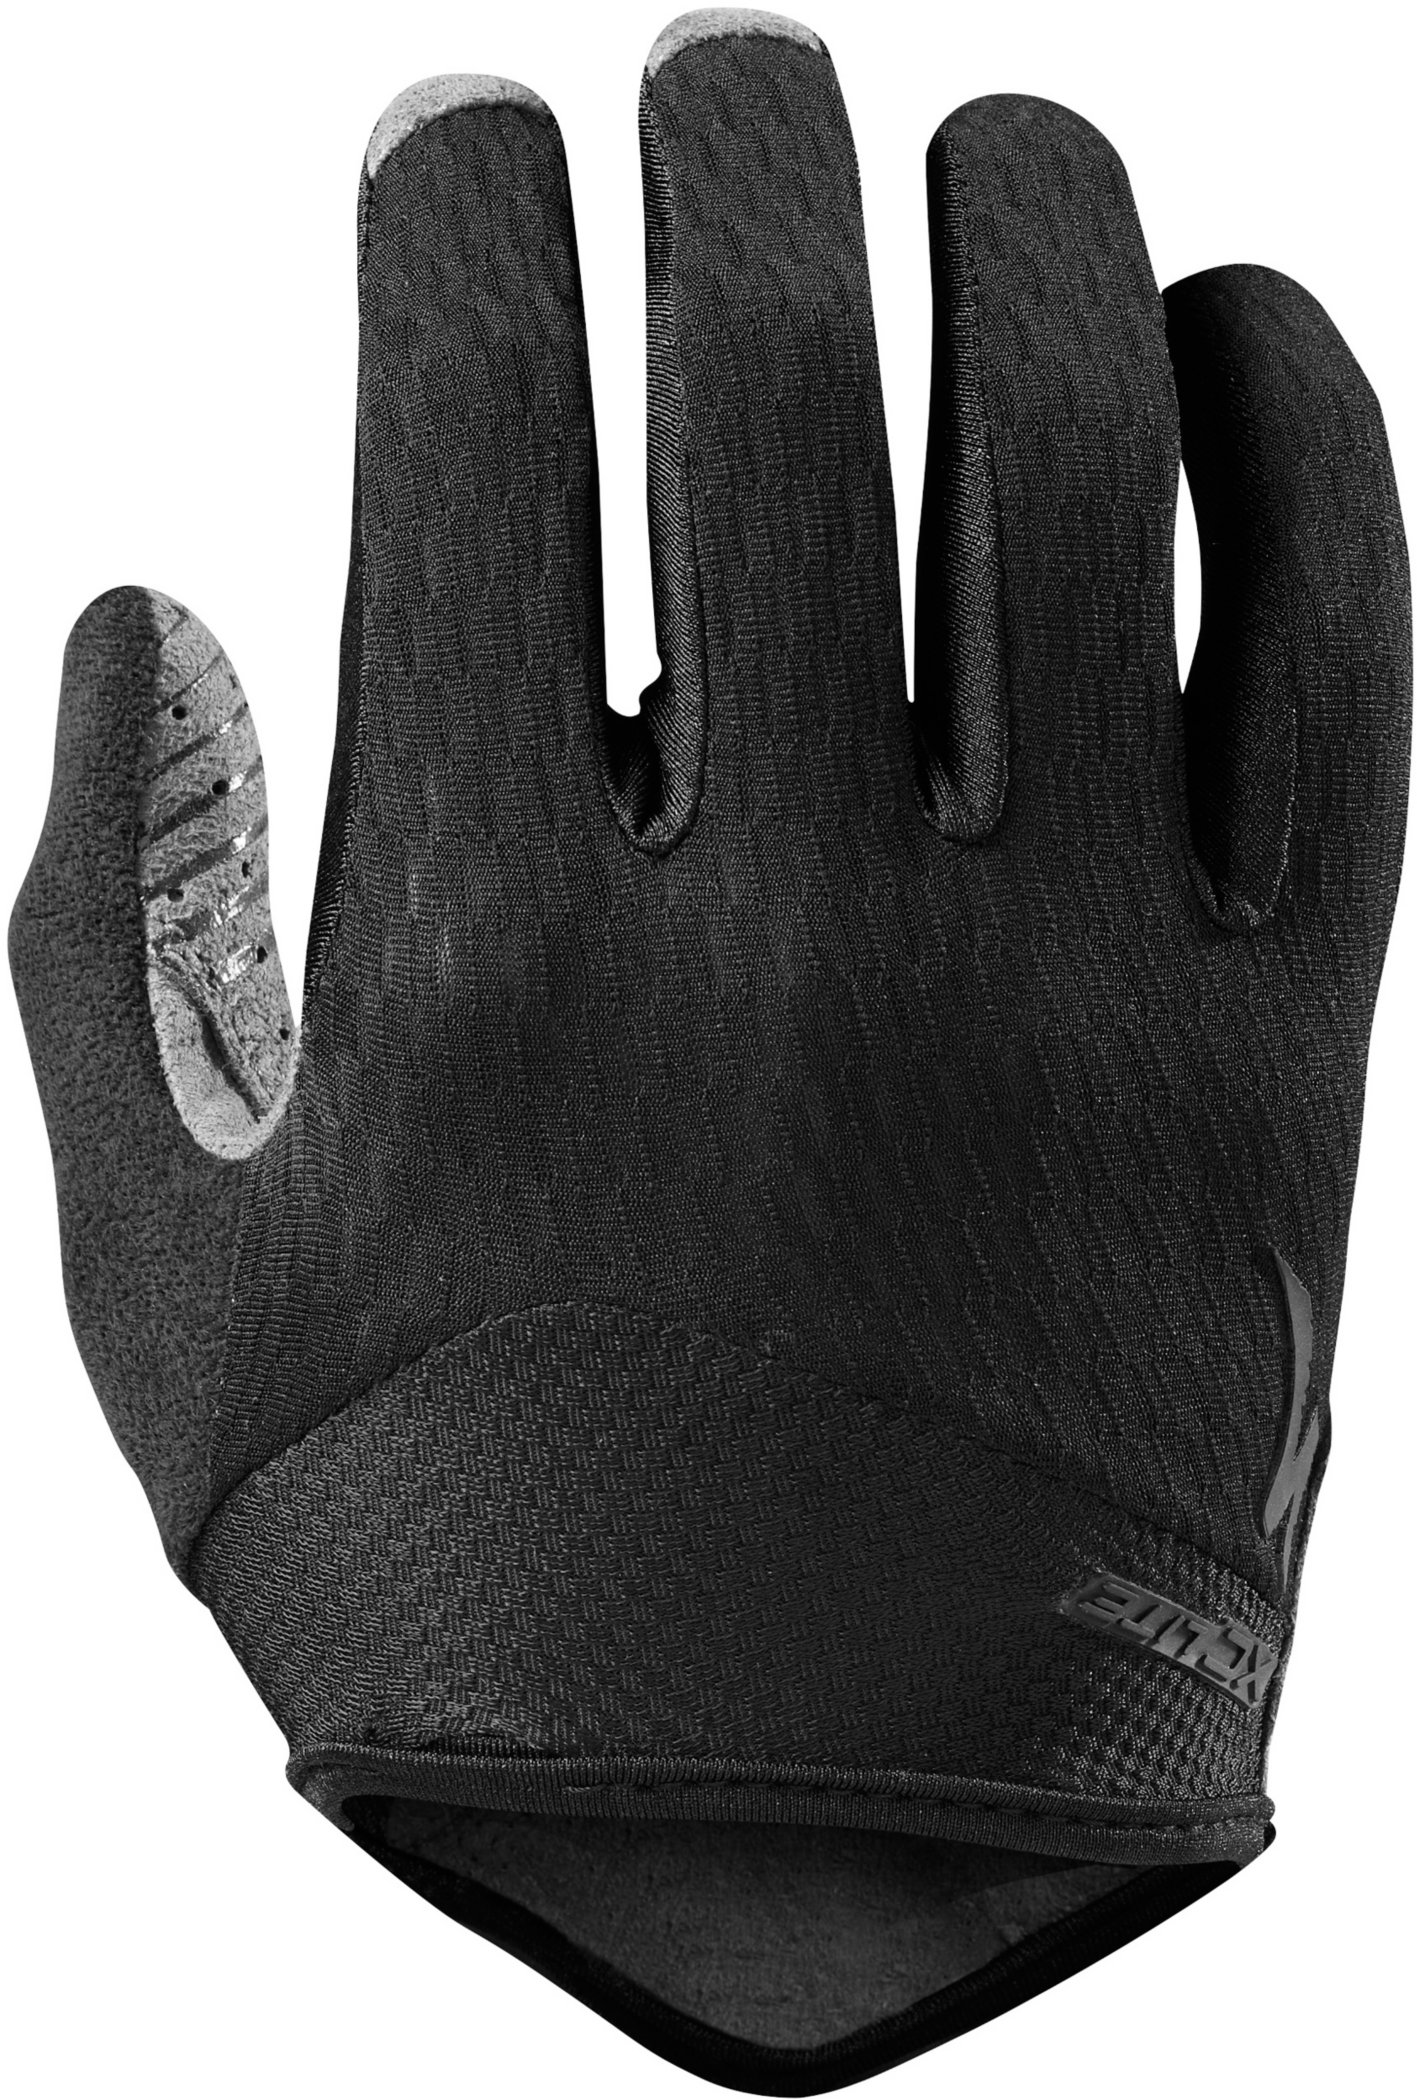 Specialized XC Lite Gloves Black/Black Small - Alpha Bikes